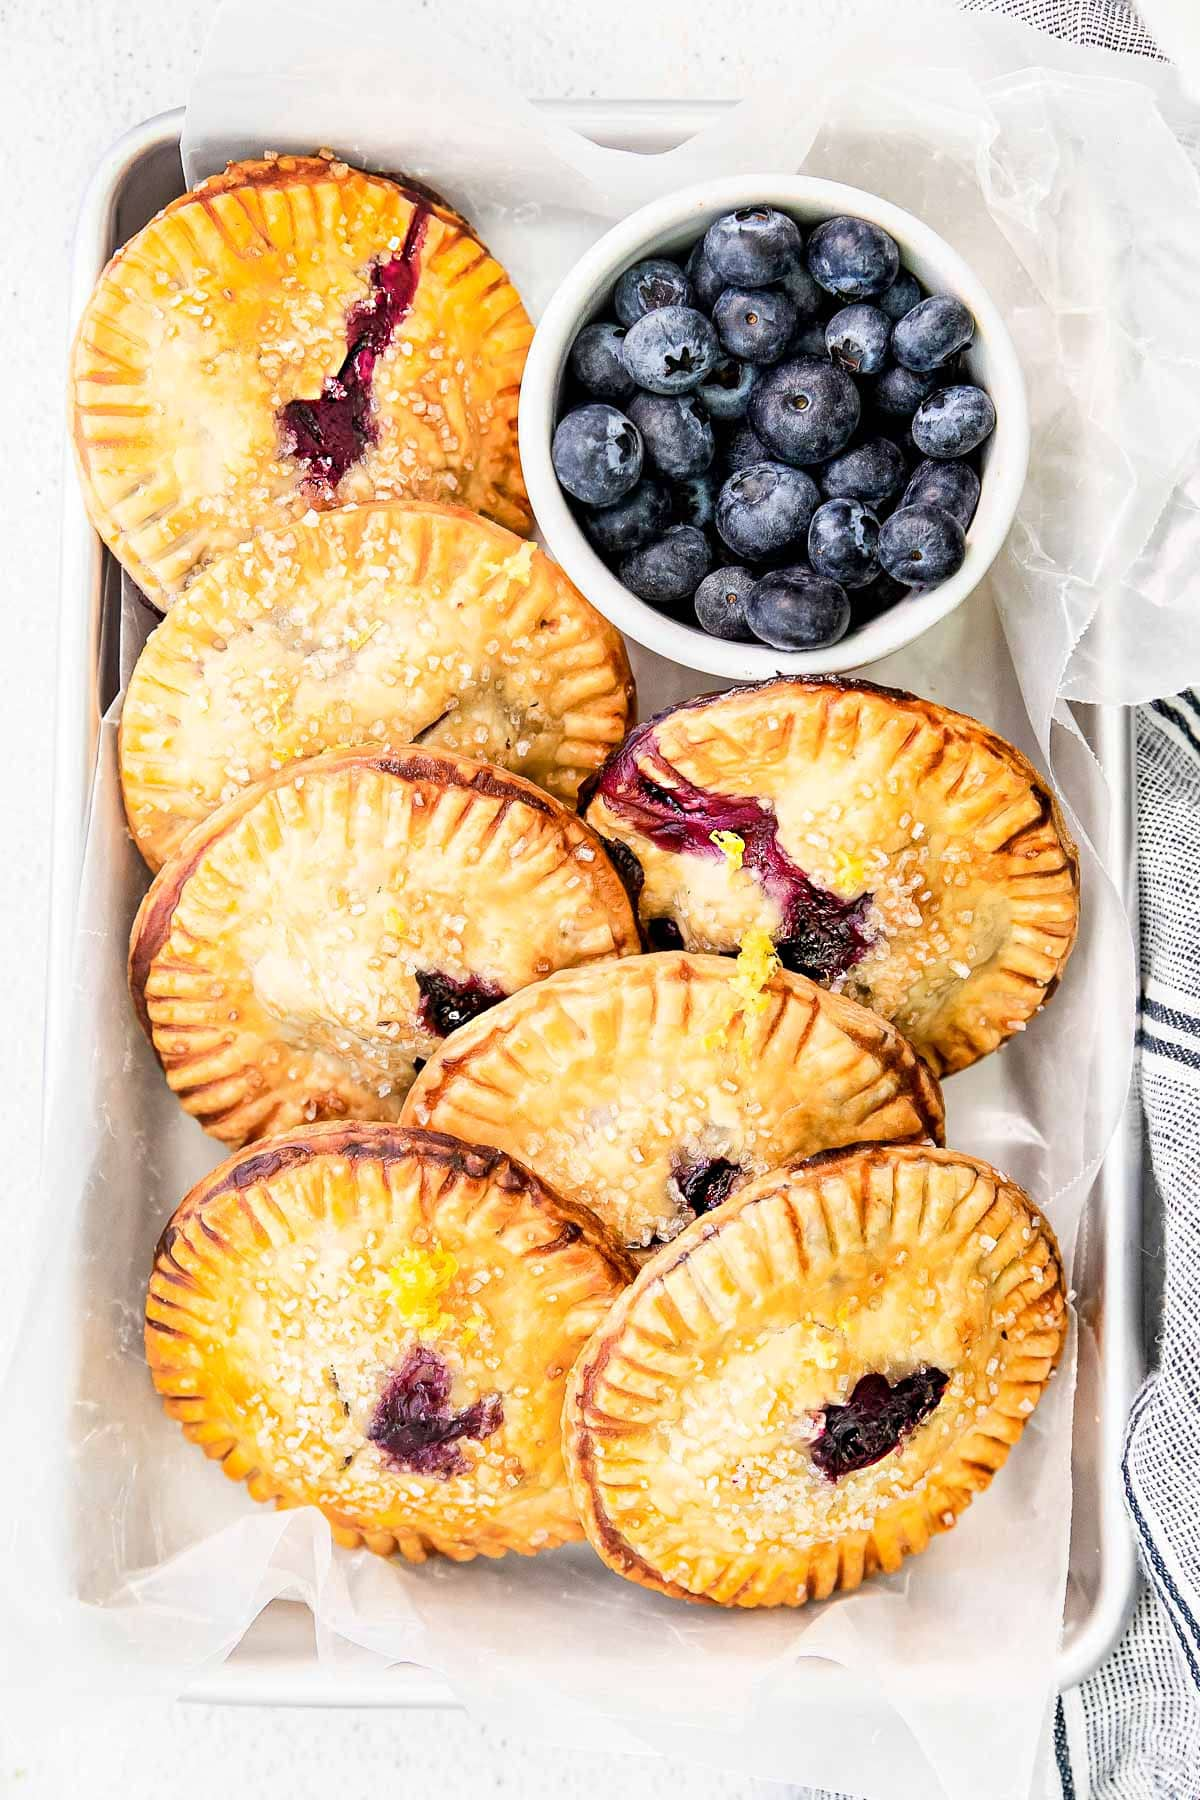 top down look at blueberry hand pies ready serve from small sheet pan with small bowl of blueberries nestled next to the pies.